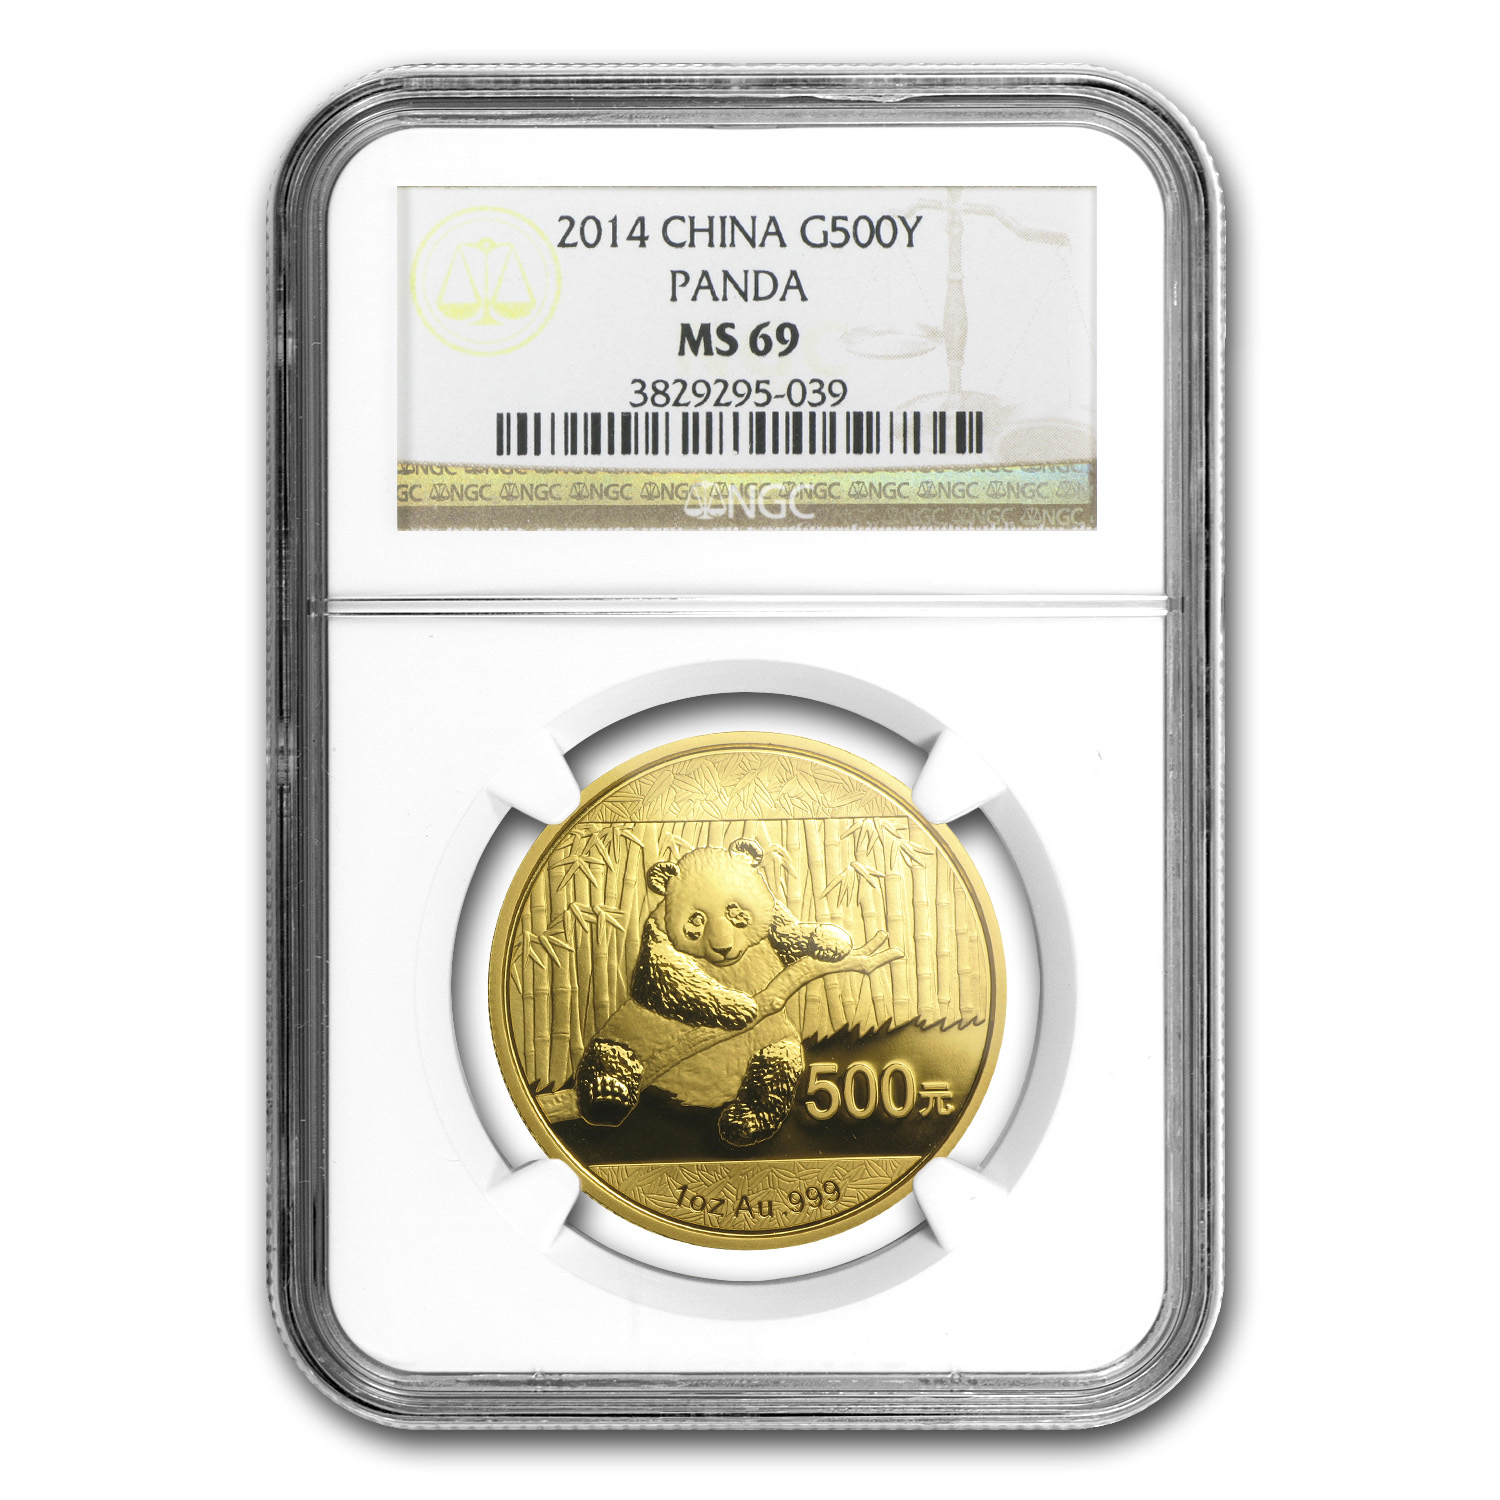 2014 China 1 oz Gold Panda MS-69 NGC